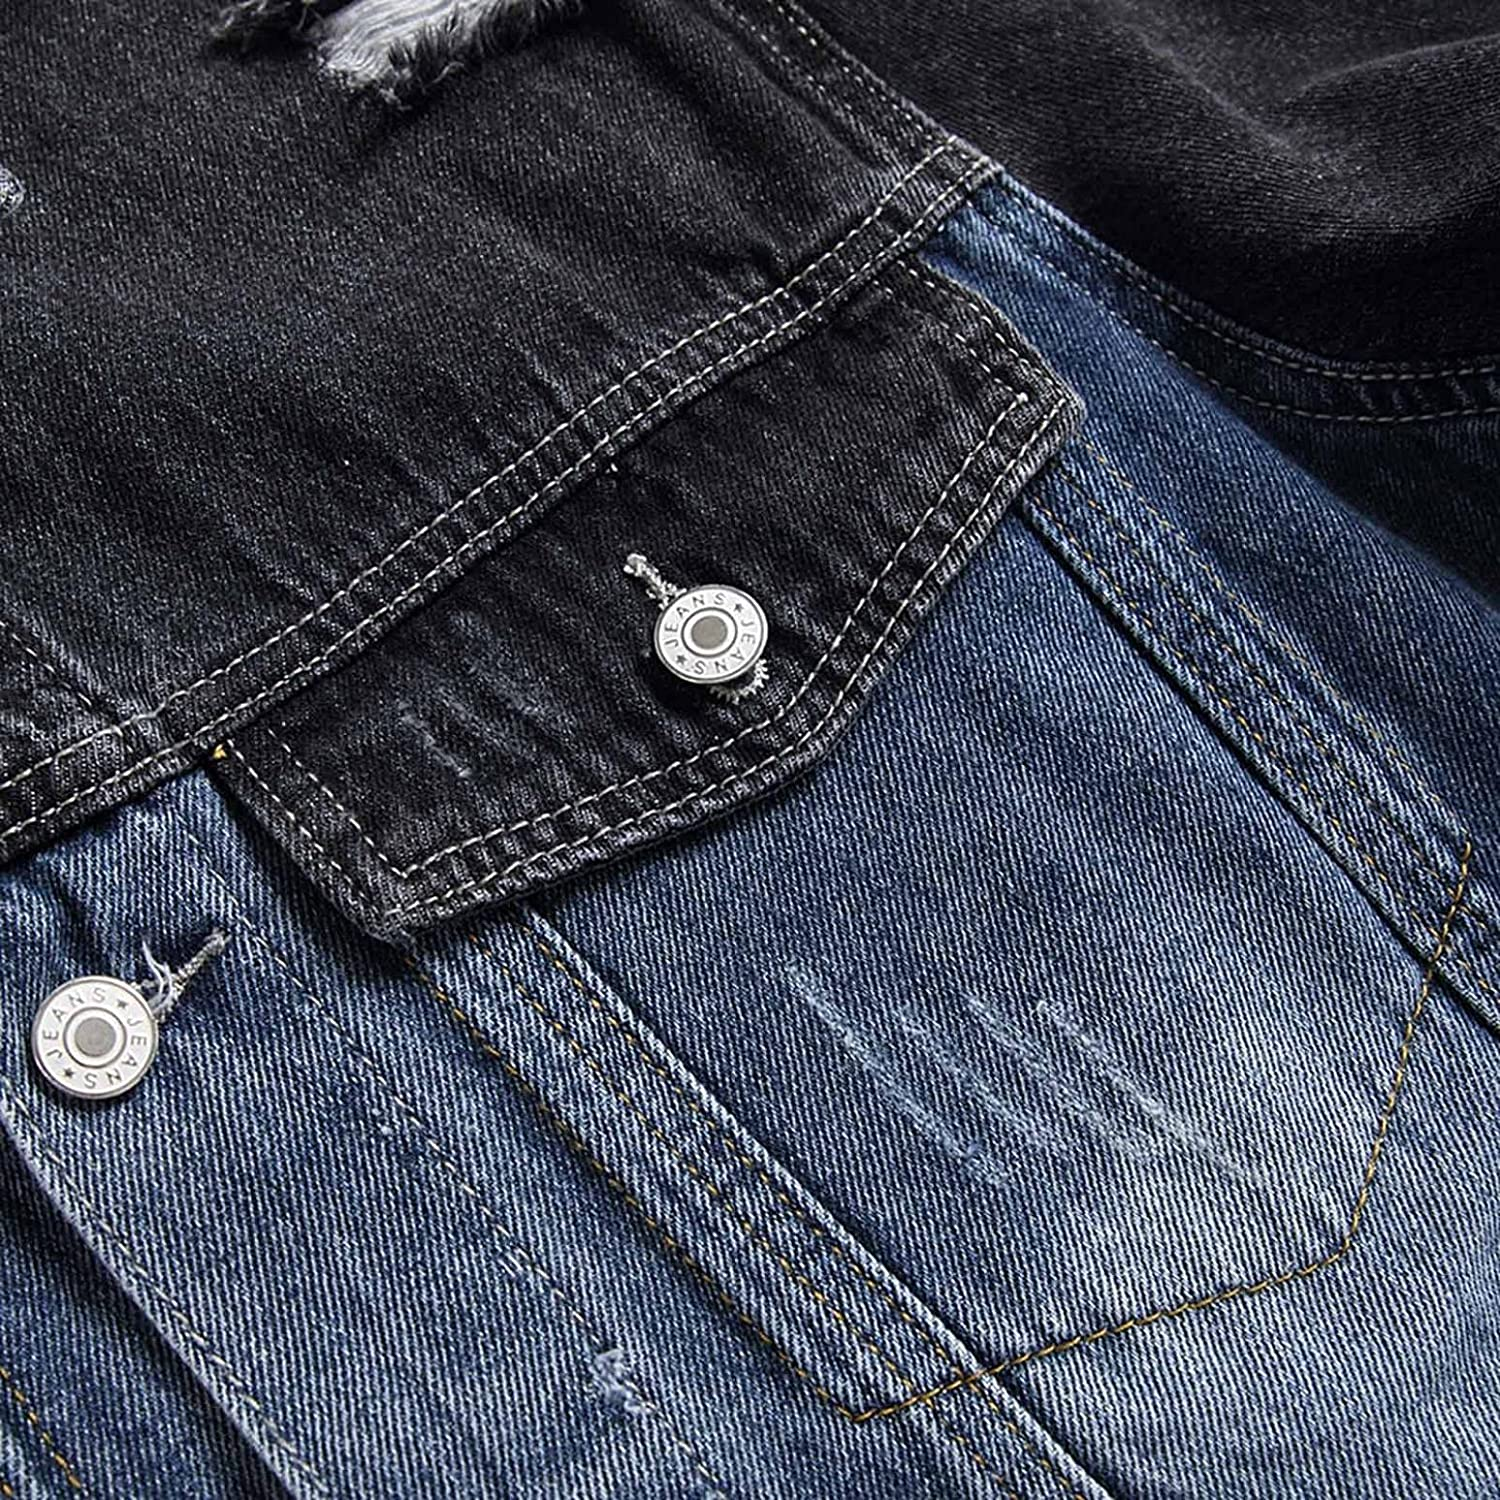 Denim Jacket for Men Classic Ripped Slim Long Sleeve Matching Hole Collar Pocket Jeans Coat Top Blouse